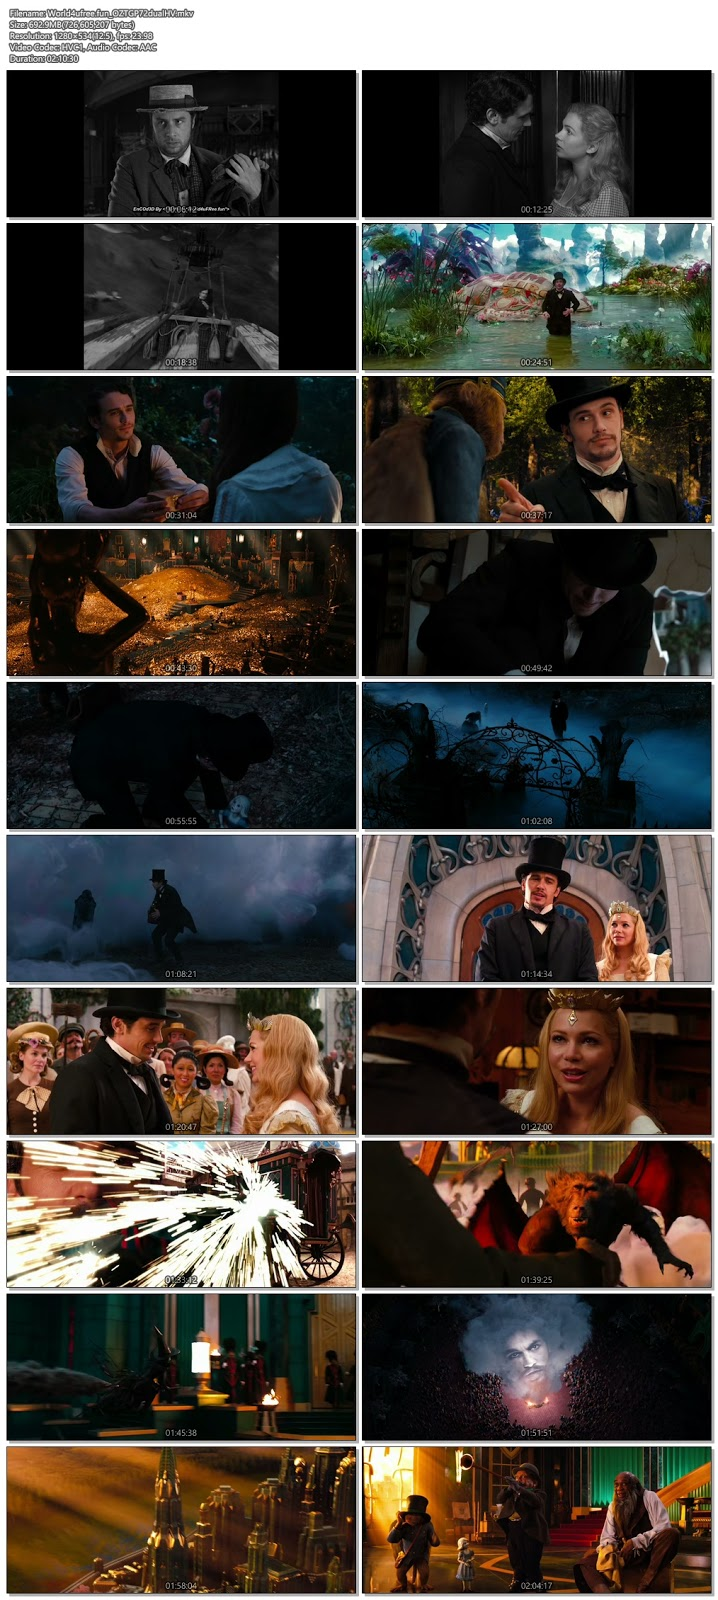 Oz the Great and Powerful 2013 Dual Audio 720p BRRip 700Mb HEVC x265classified-ads.expert, hollywood movie Arthur and the Invisibles 2006 hindi dubbed dual audio hindi english languages original audio 720p BRRip hdrip free download 700mb movies download or watch online at classified-ads.expert